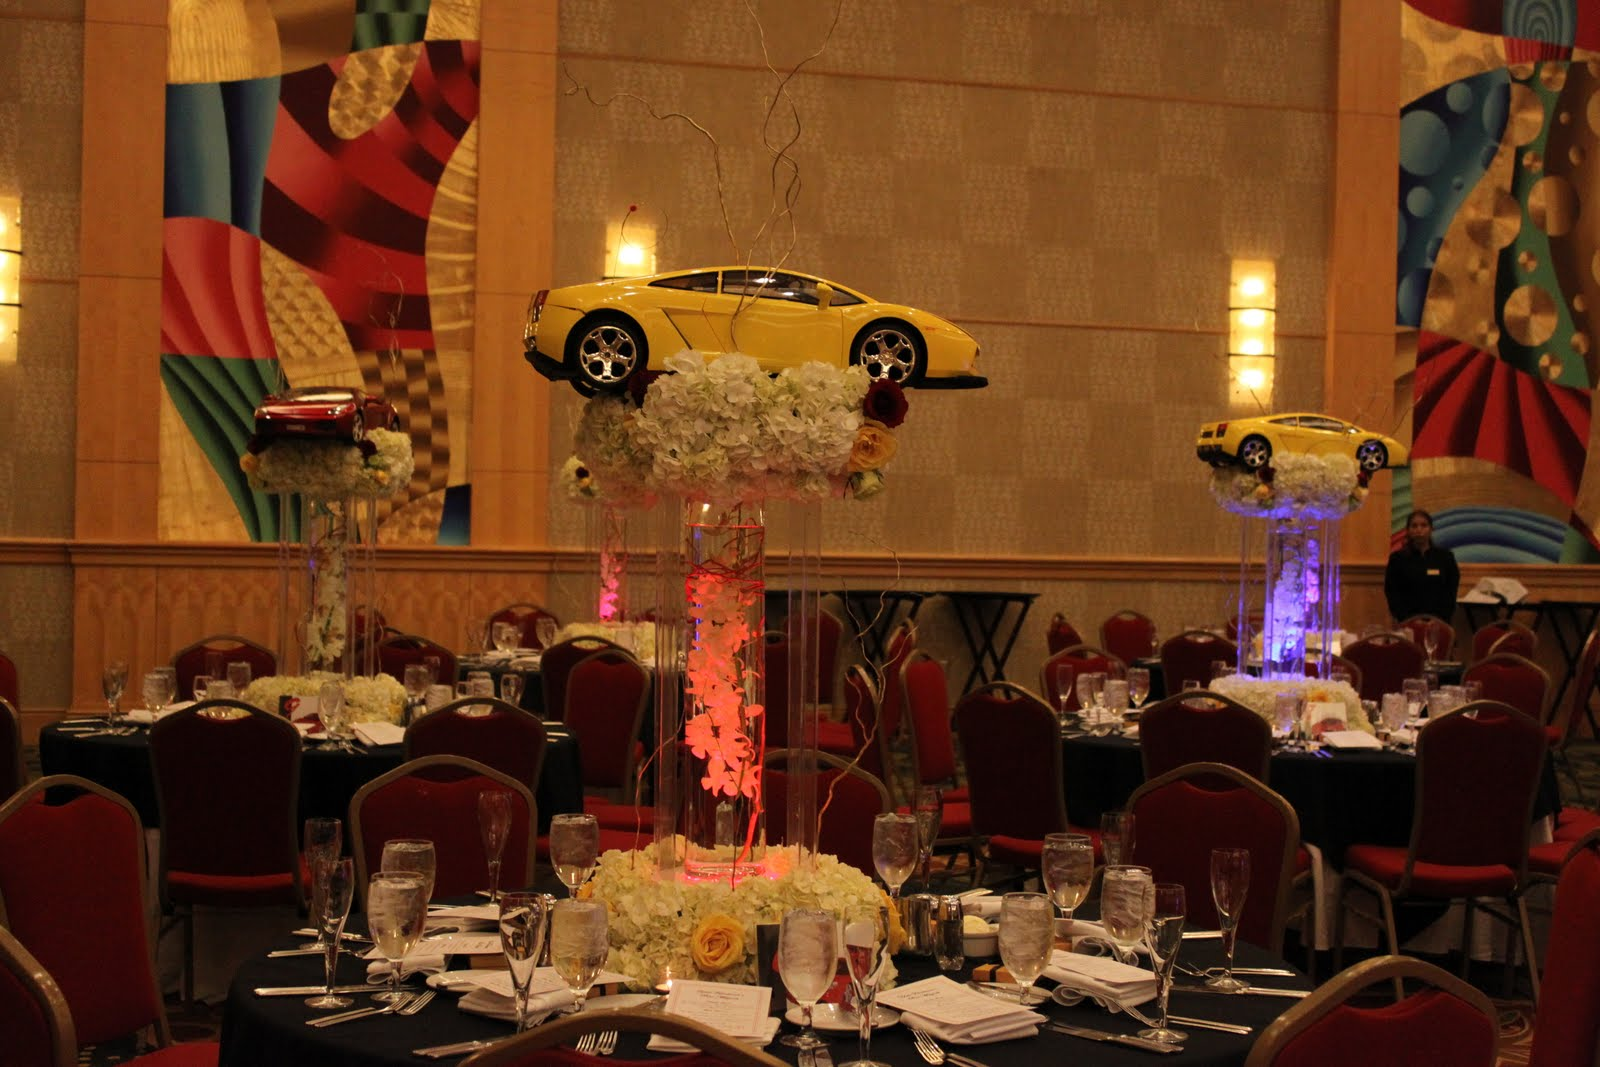 chair cover rentals washington dc grey glider bar mitzvah decor wedding and event planner party